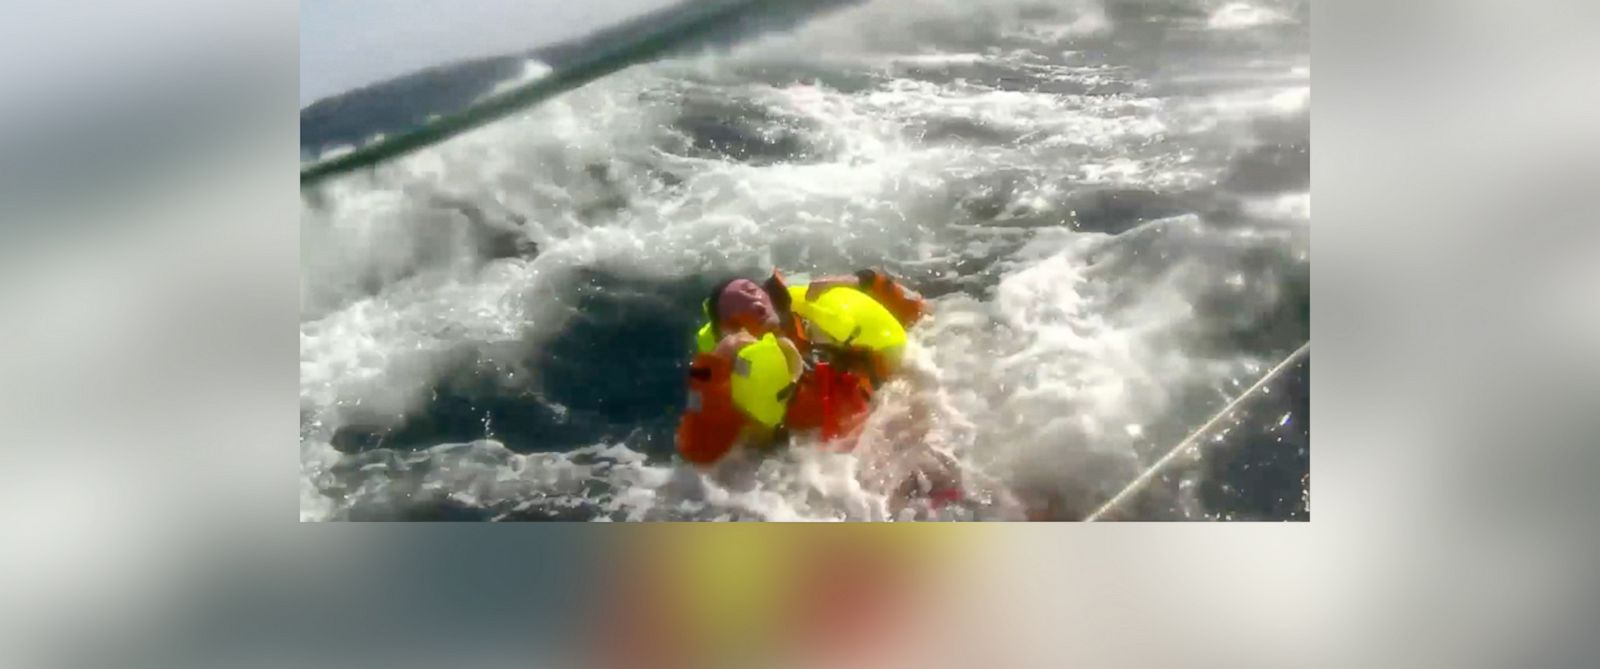 PHOTO: Andrew Taylor, 46, left, from London is shown prior to his rescue after falling overboard from the 70-foot yacht, the Derry-Londonderry-Doire, during the Clipper Round the World Yacht Race, Monday, March 31, 2014.